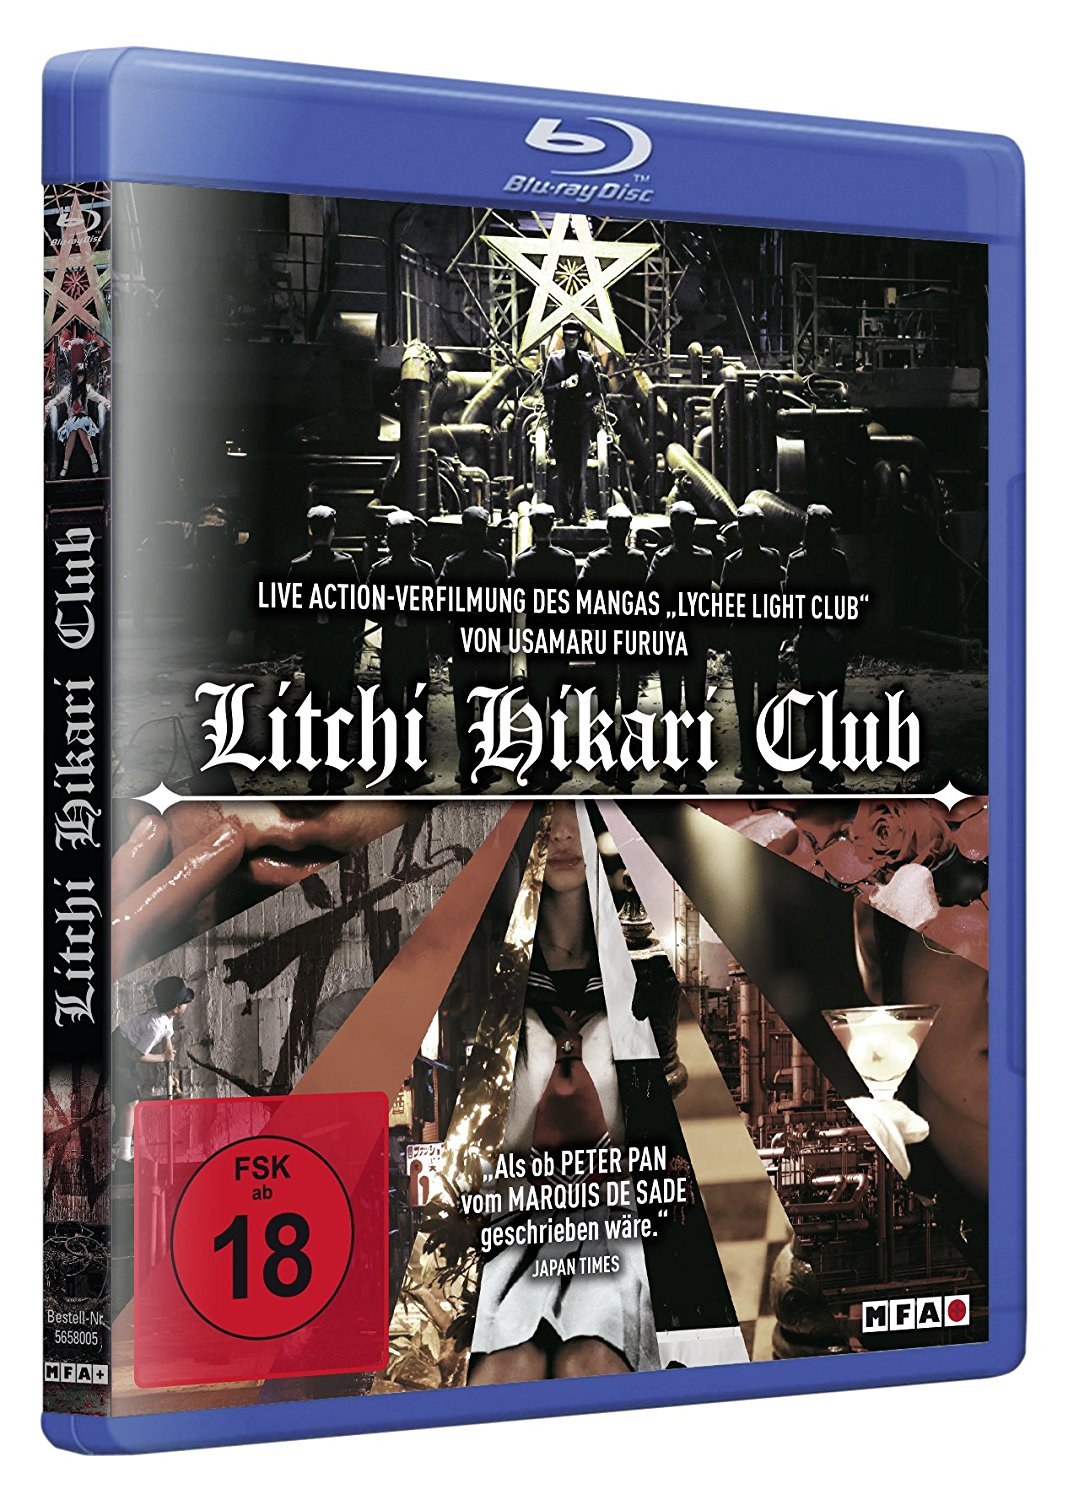 litchi-hikari-club-test-dvd-bluray-review-cover